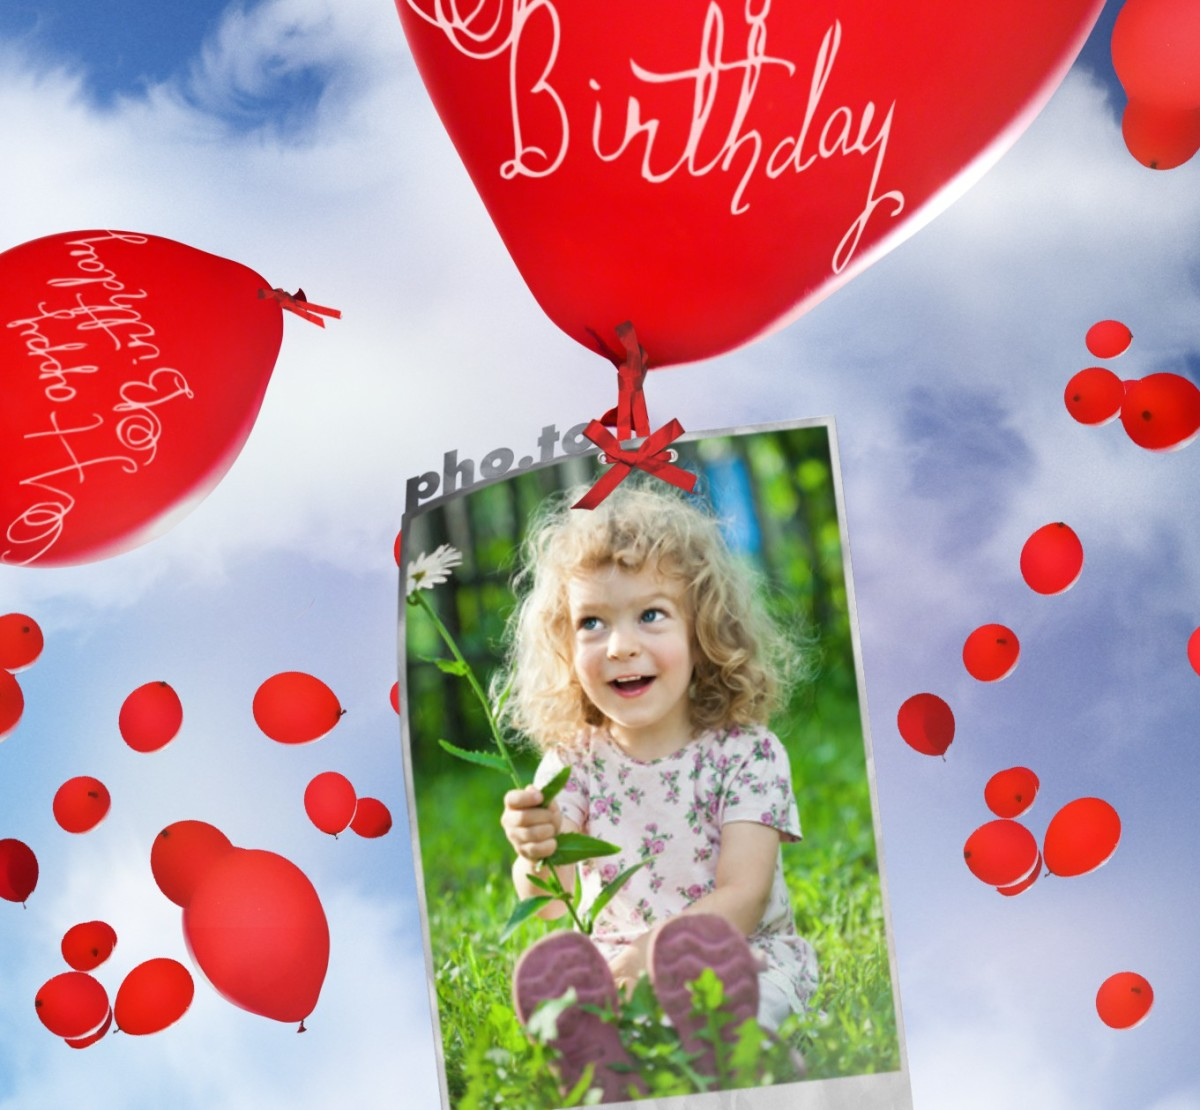 Birthday card with flying balloons Printable photo template – How to Make an Online Birthday Card